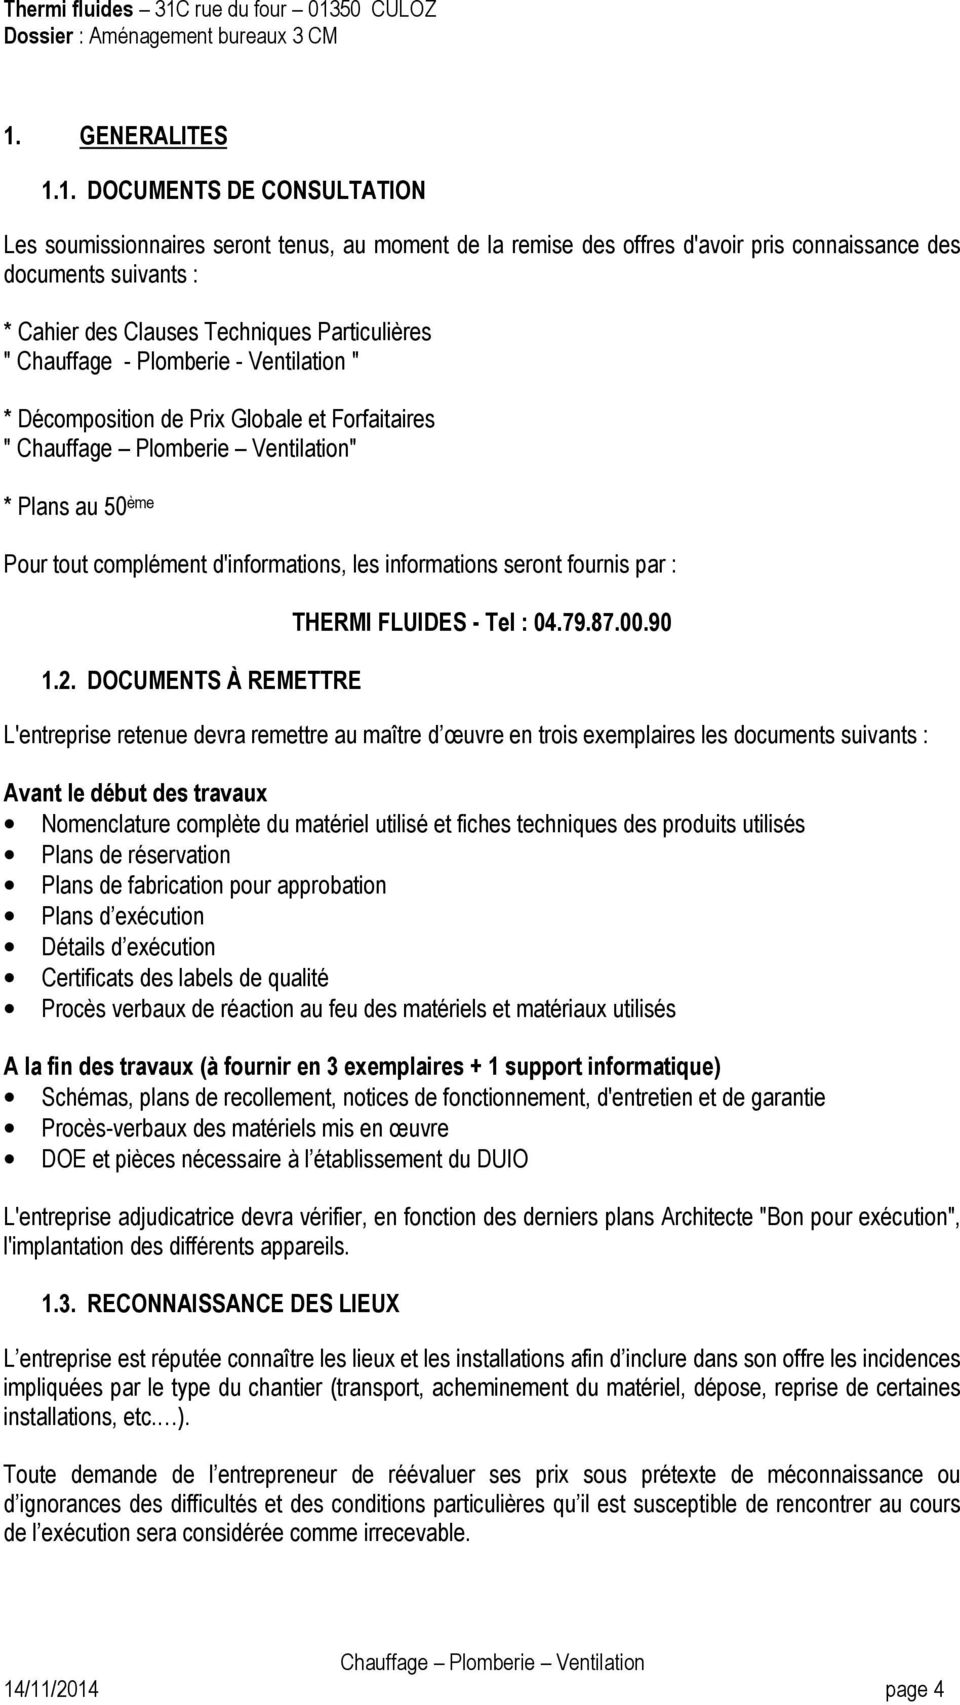 1.2. DOCUMENTS À REMETTRE THERMI FLUIDES - Tel : 04.79.87.00.